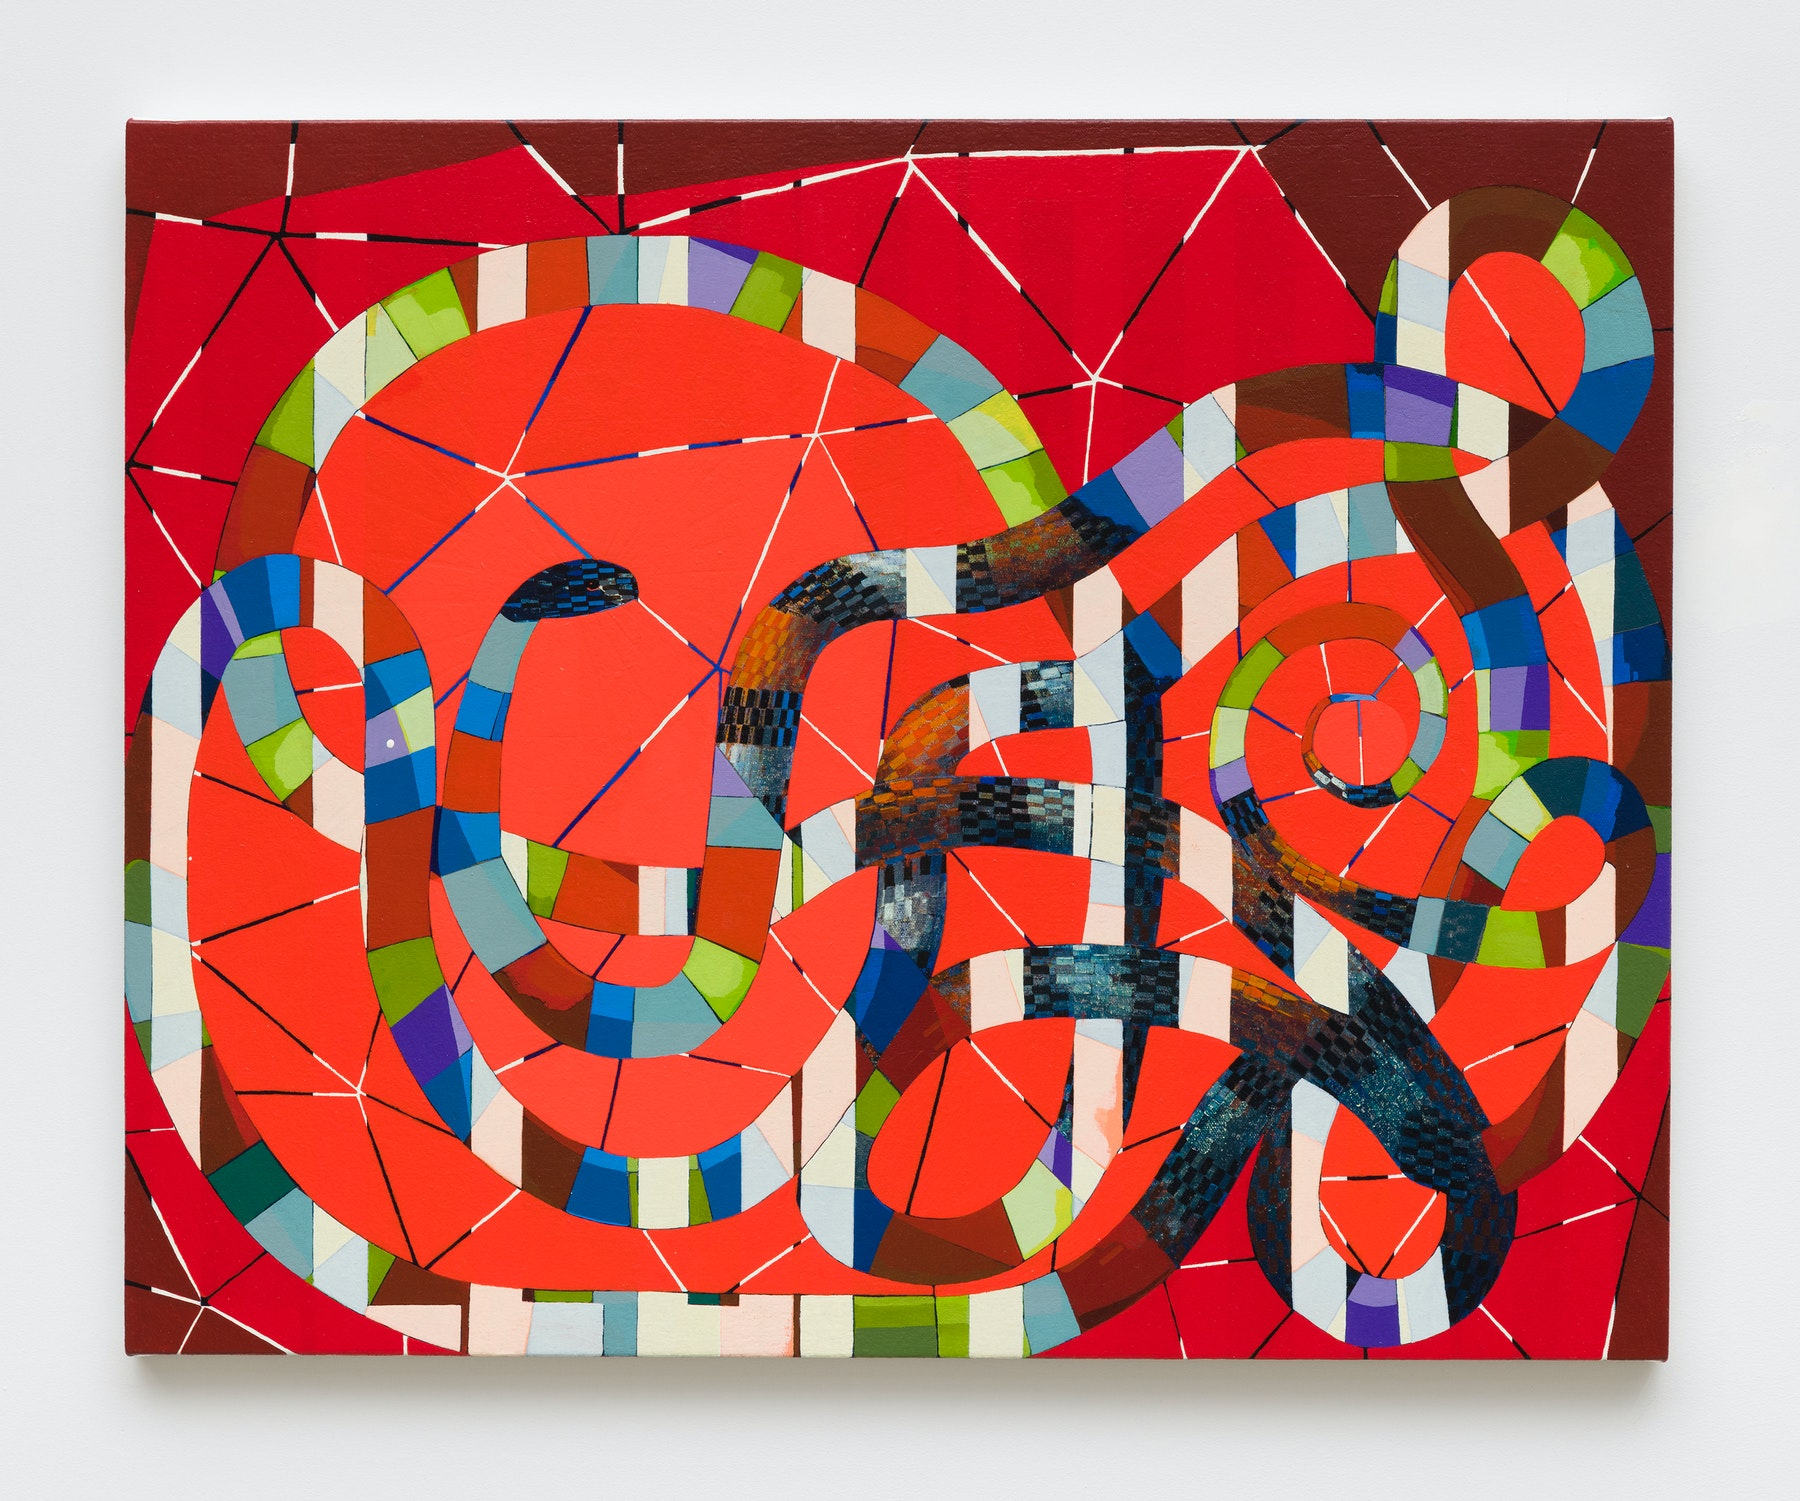 """Brad Eberhard """"The Red Vivarium,"""" 2019 Oil on canvas over panel 24 x 30"""" [HxW] (60.96 x 76.2 cm) Inventory #EBE157 Courtesy of the artist and Vielmetter Los Angeles Photo credit: Jeff McLane"""